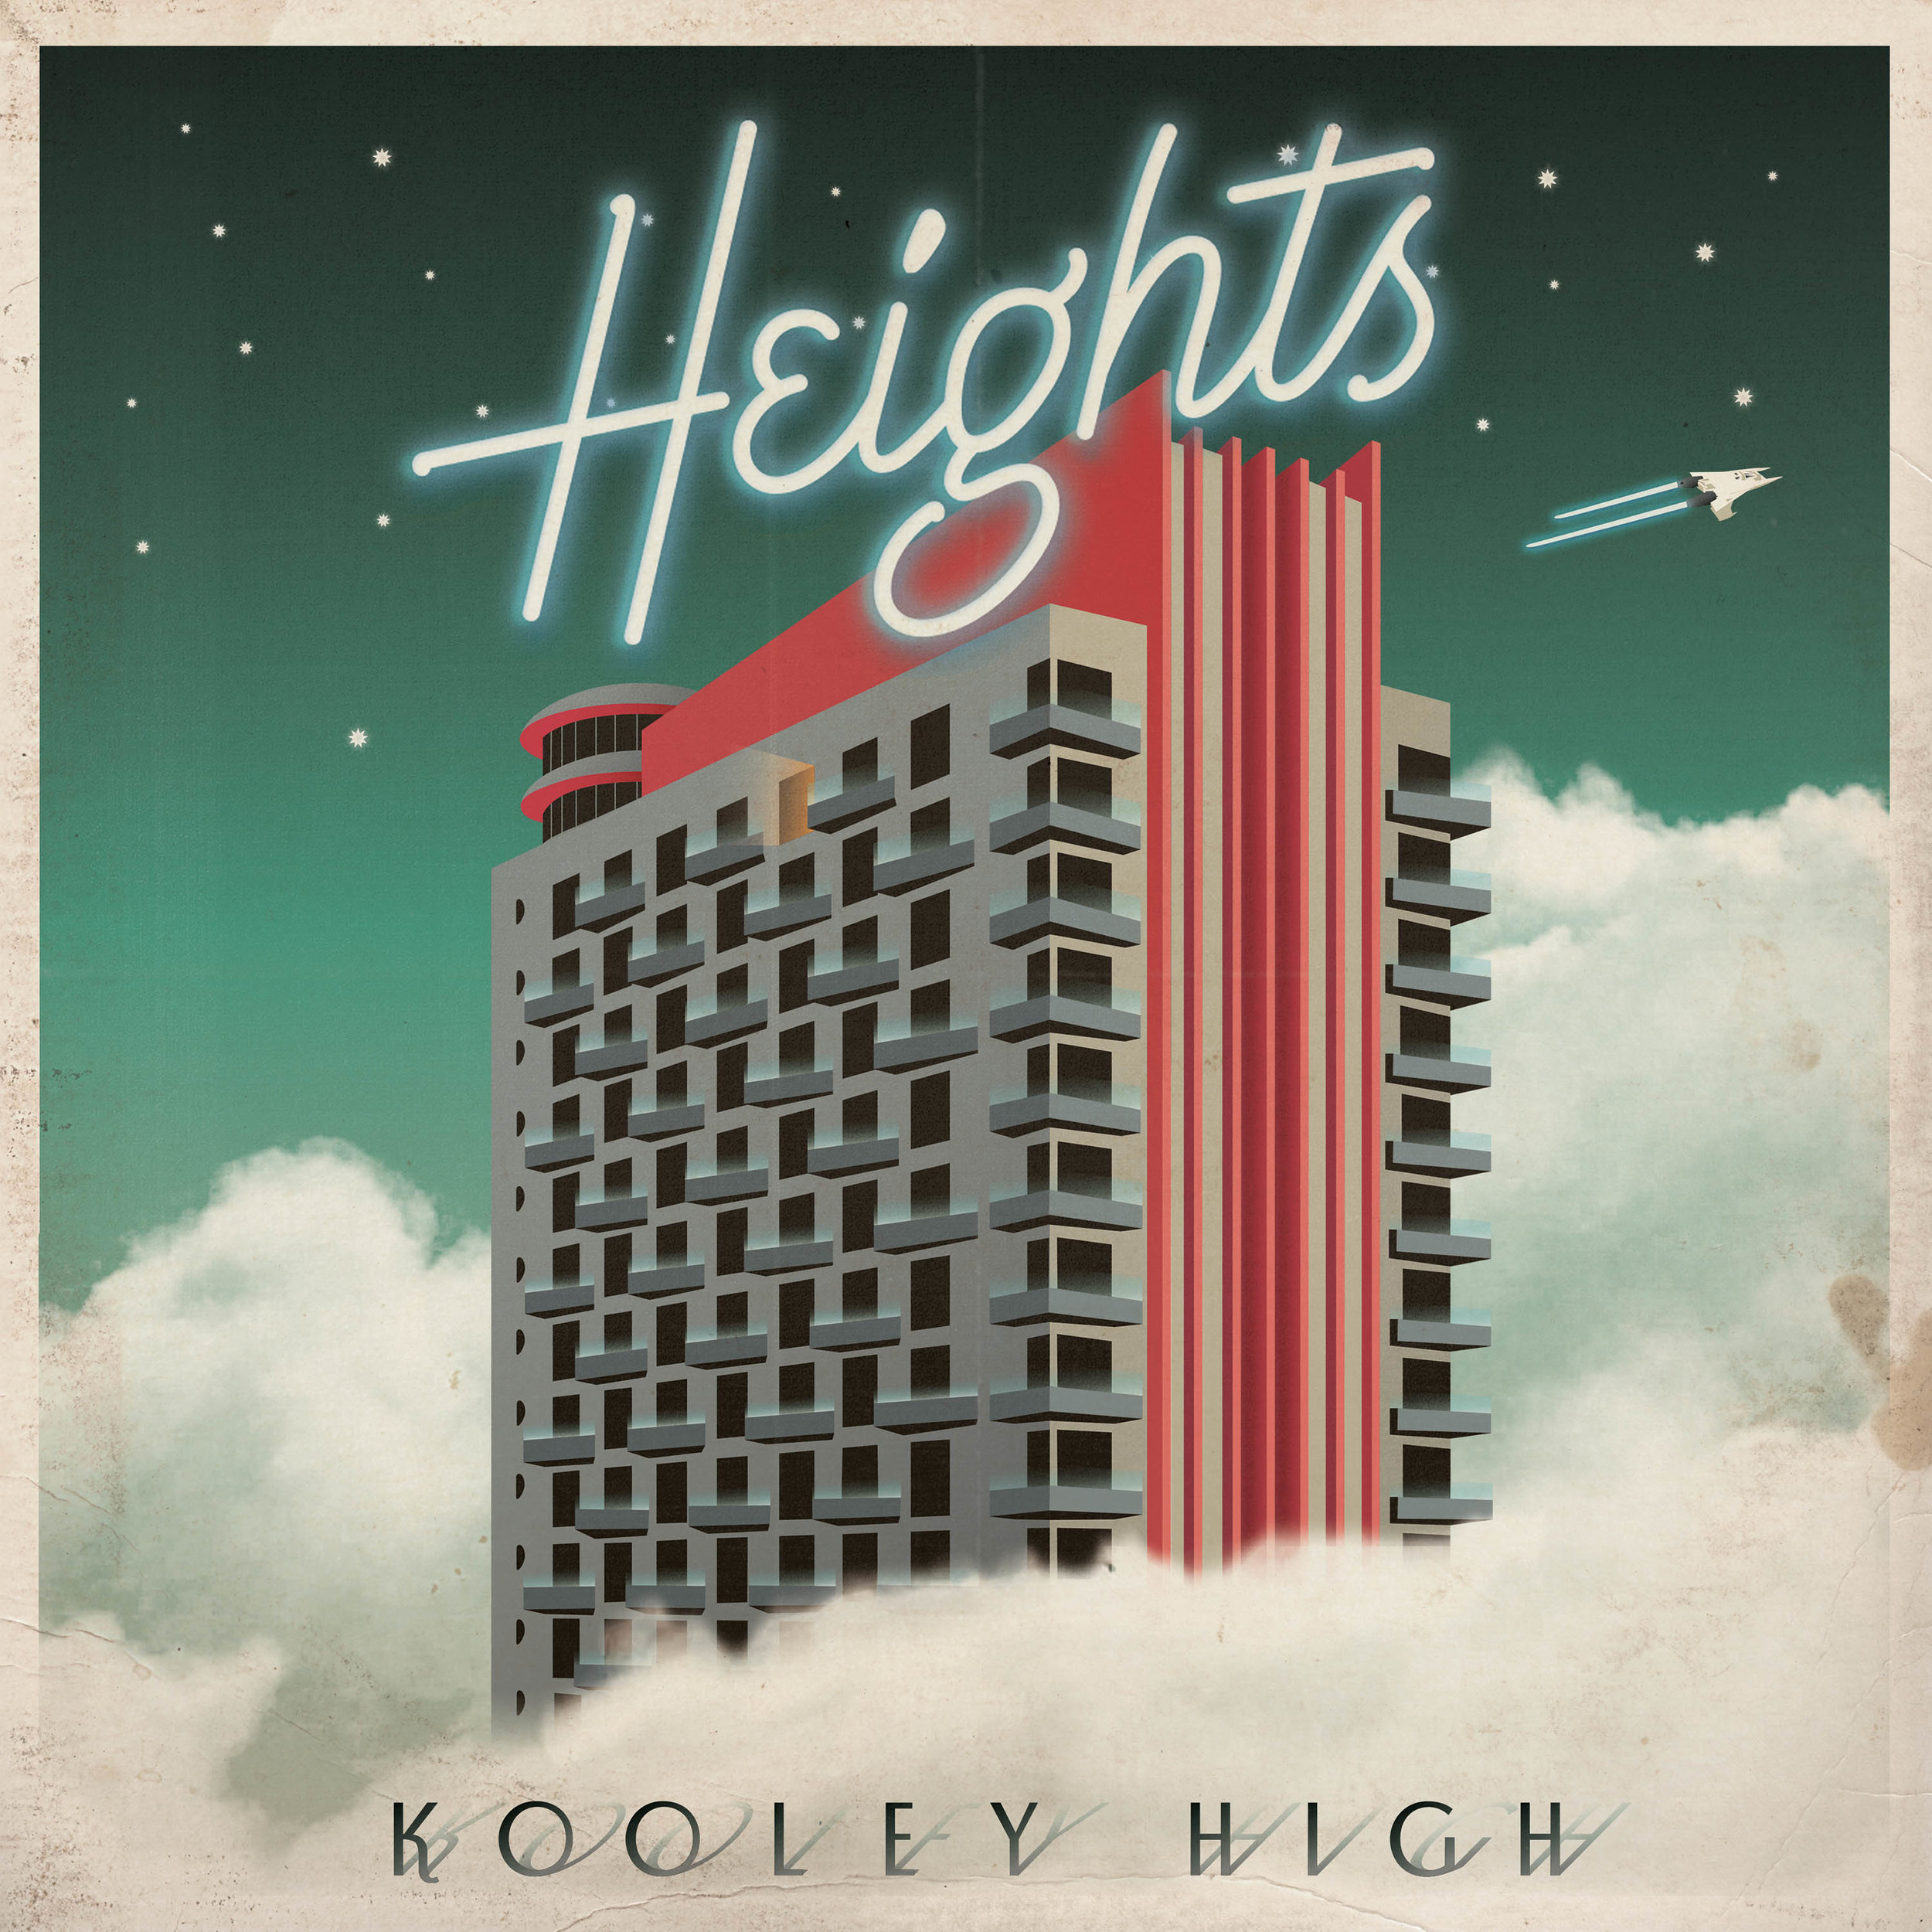 KooleyHigh_Heights_FrontCoverDigital_3000.jpg